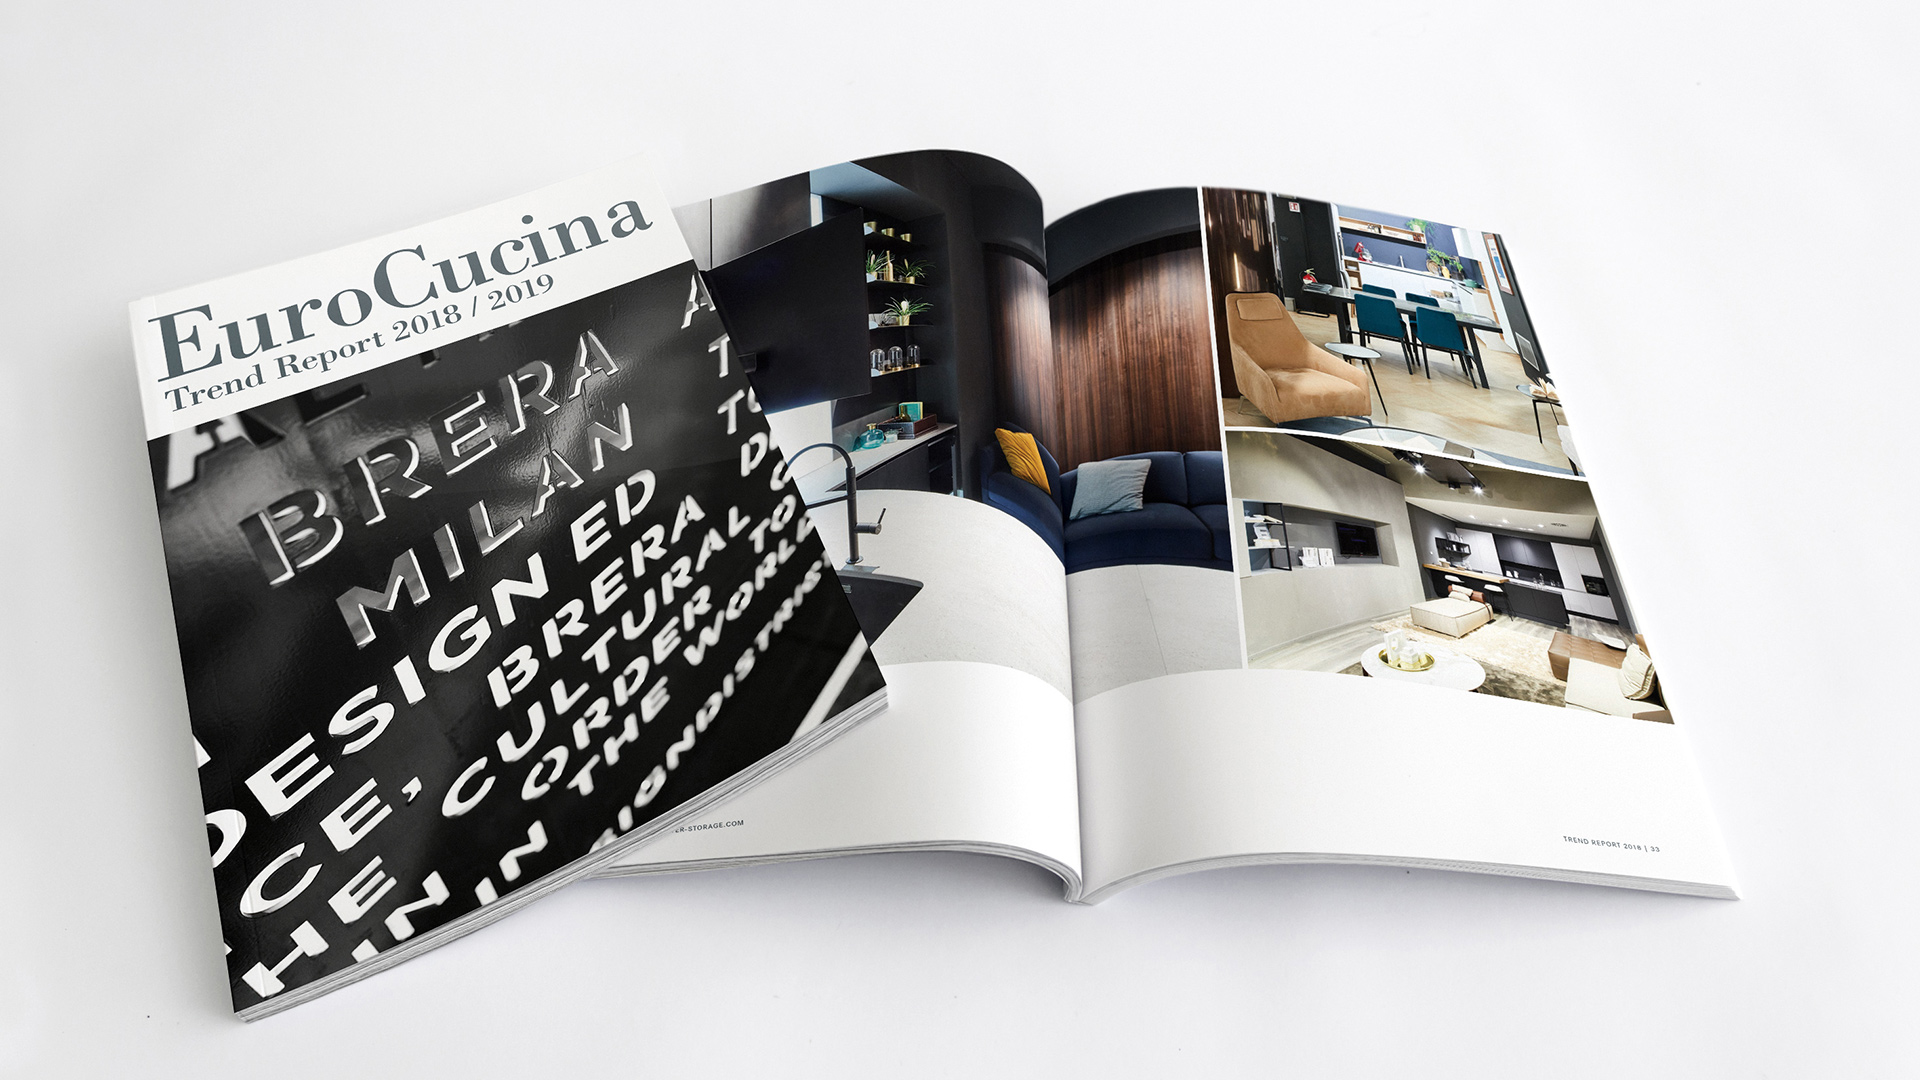 Trendreport EuroCucina 2018/2019: Kesseböhmer documents the future of the kitchen